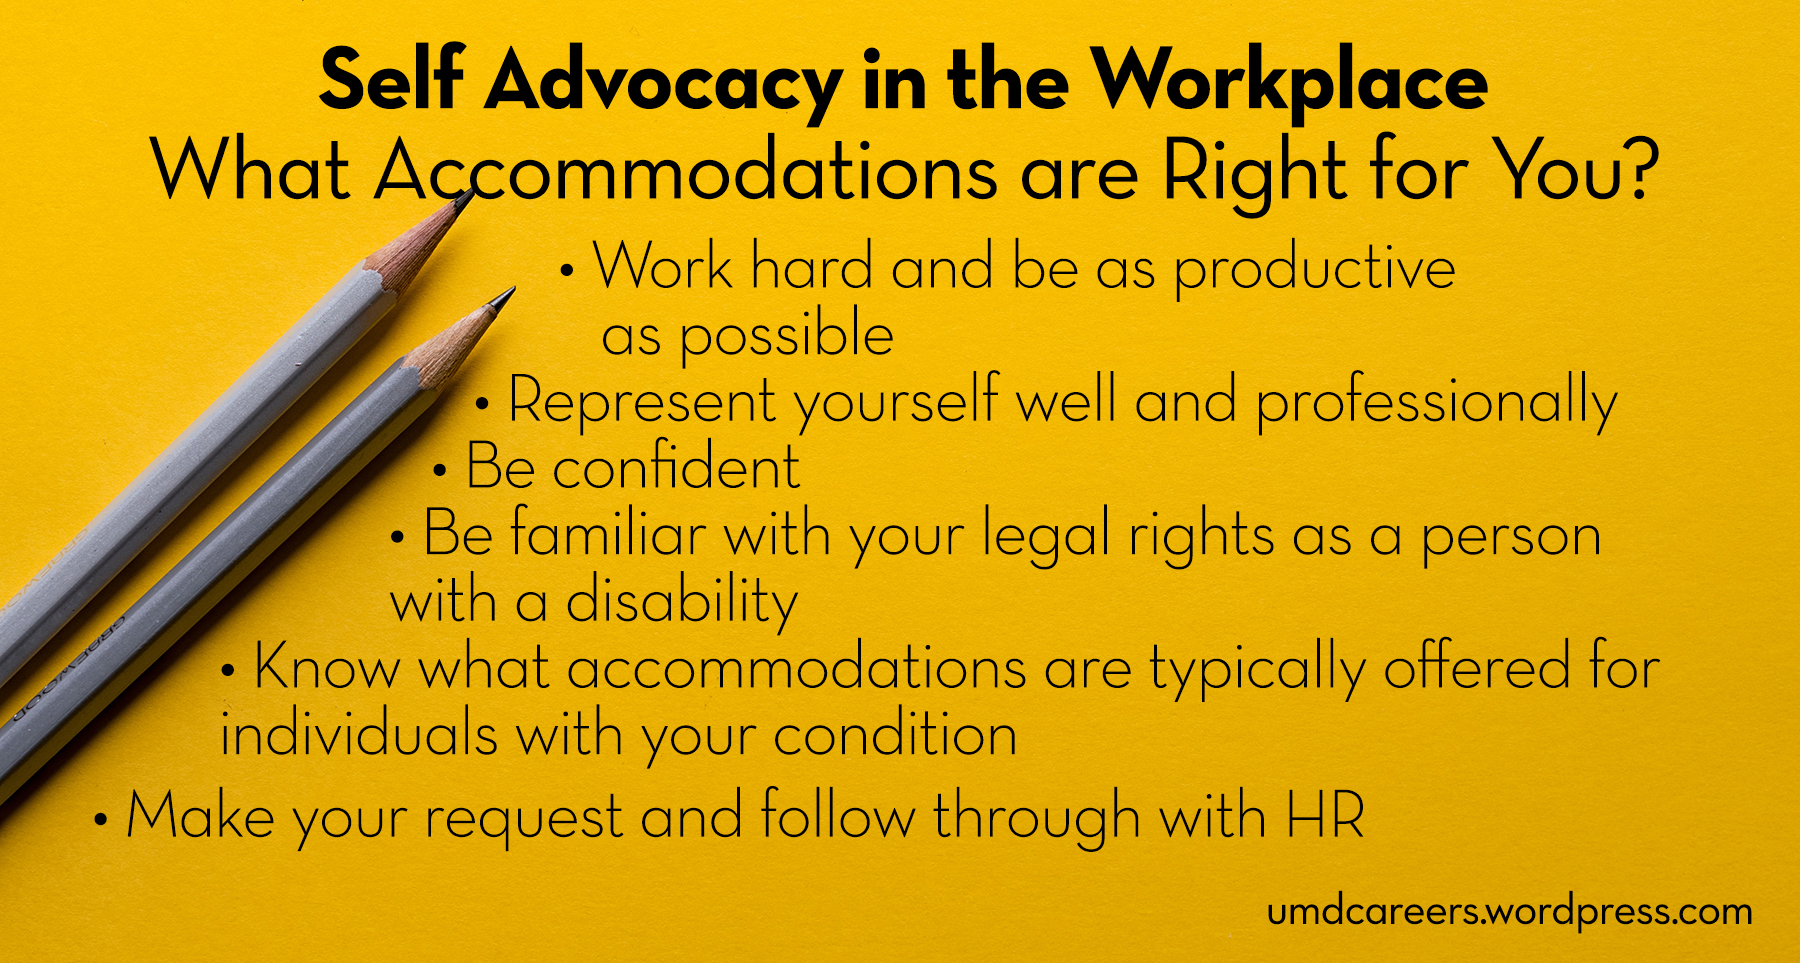 SelfAdvocacy in the Workplace  Peer Into Your Career